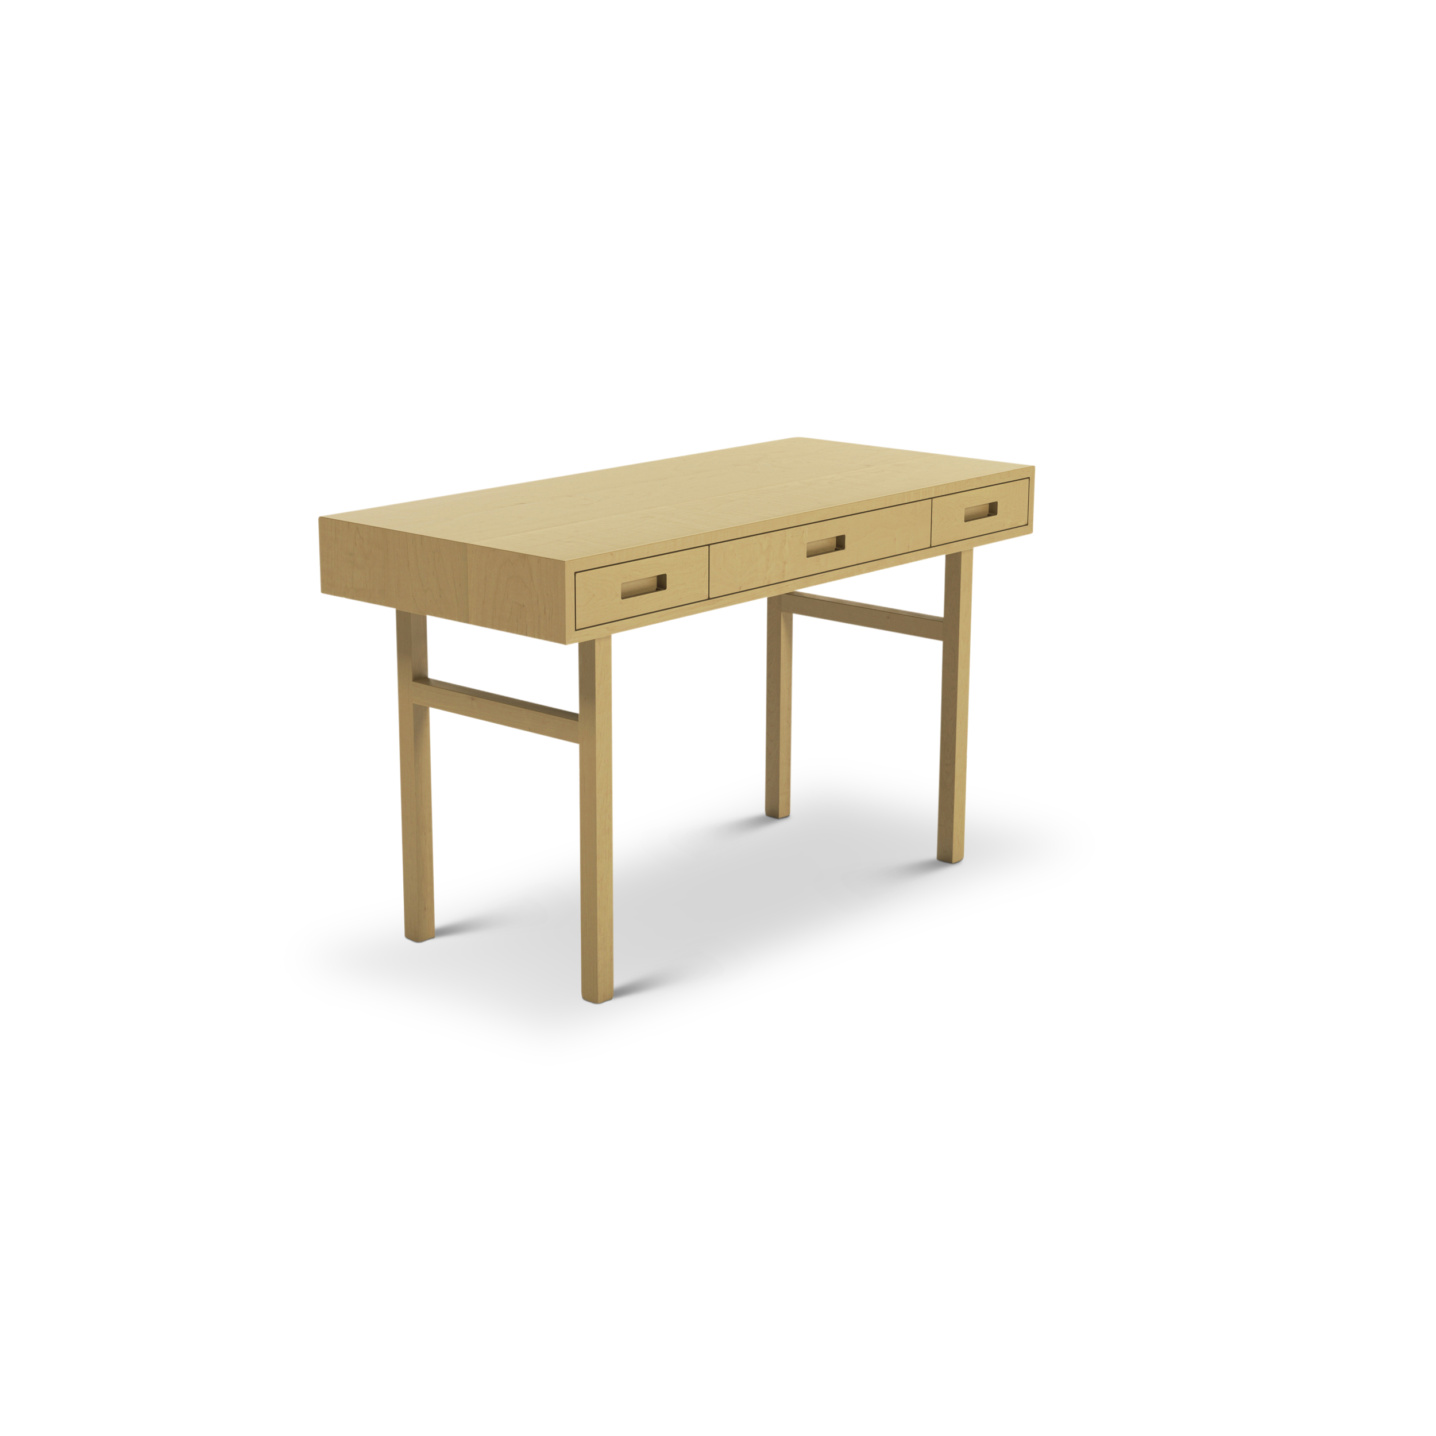 Maple desk with three drawers